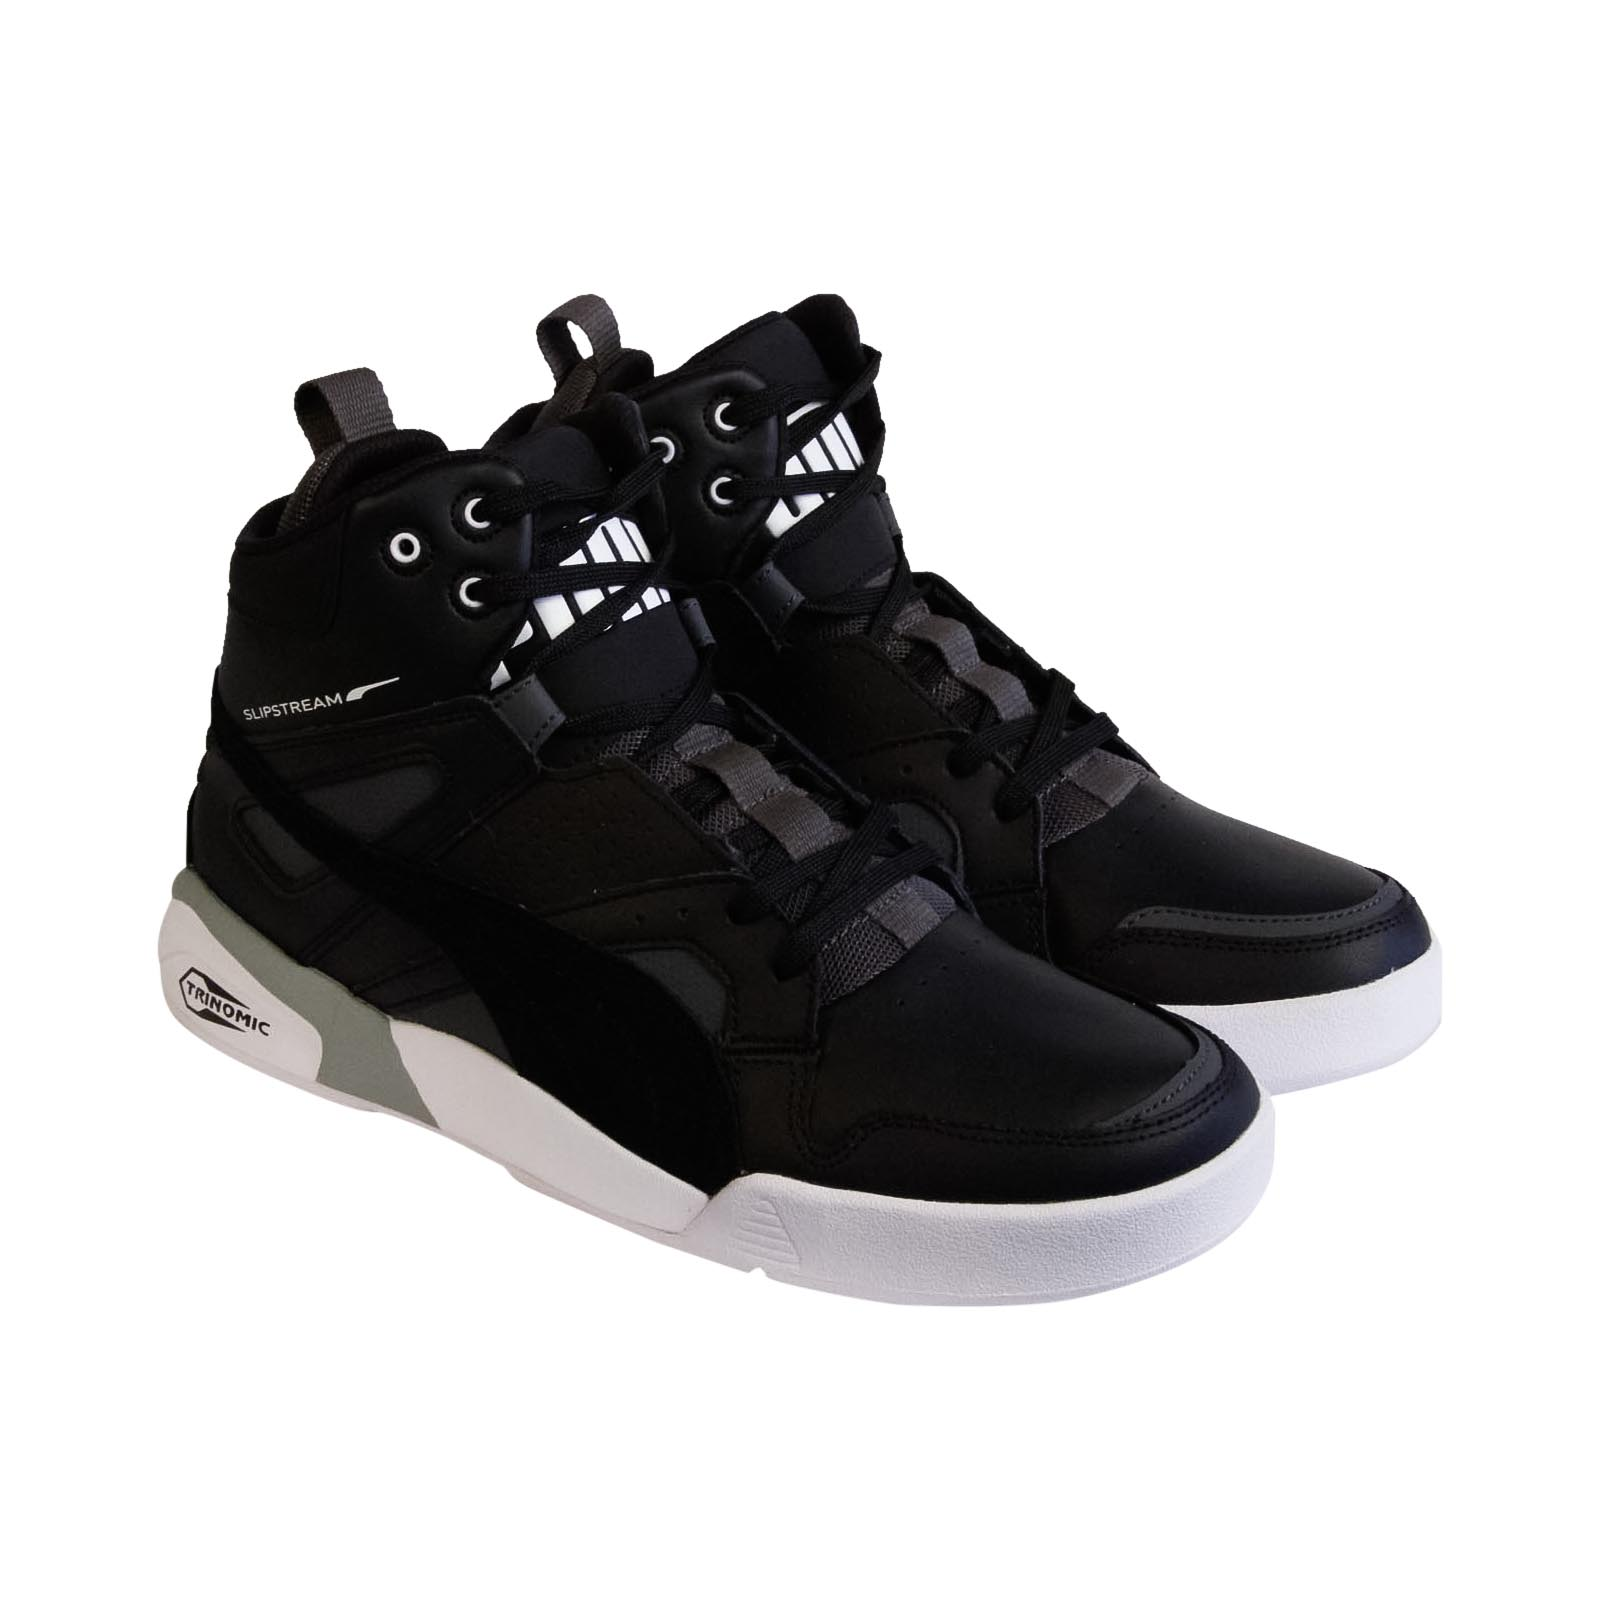 Puma Mens Ftr Trinomic Slipstream Lite 35529806 Black High Top Sneakers at Sears.com